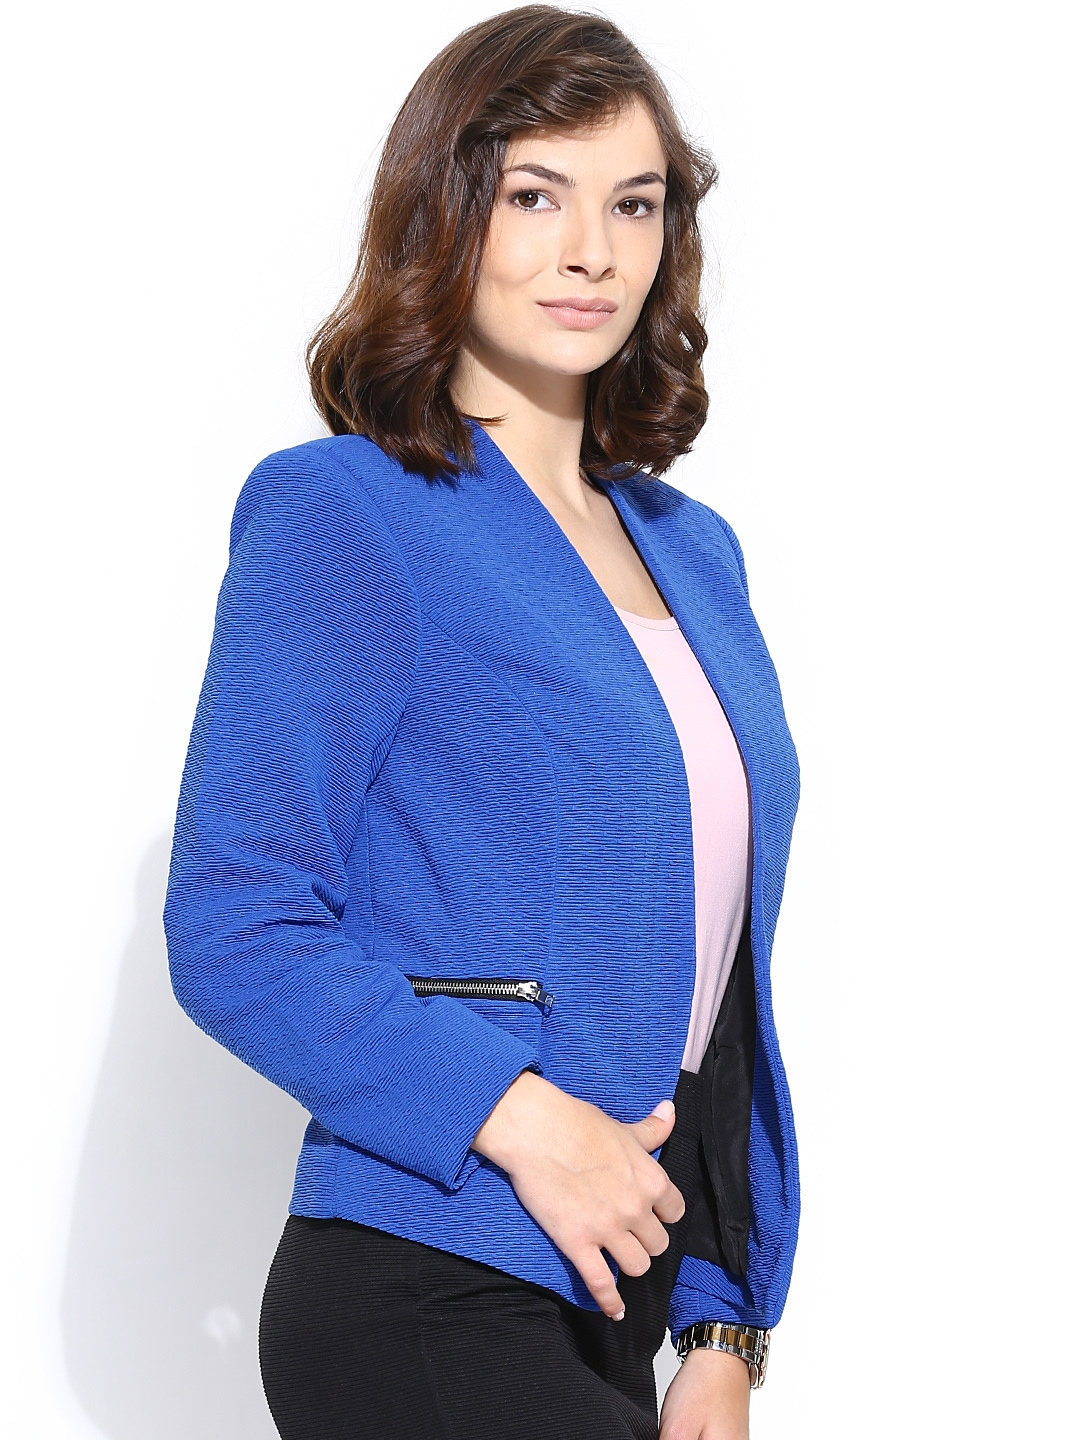 Women's Blazers Our Maxwell Park women's blazer is a rugged fully lined blazer, available in a multitude of colors, Sizes in Petite, Regular & Long lengths. Wrinkle Resistant, machine washable.